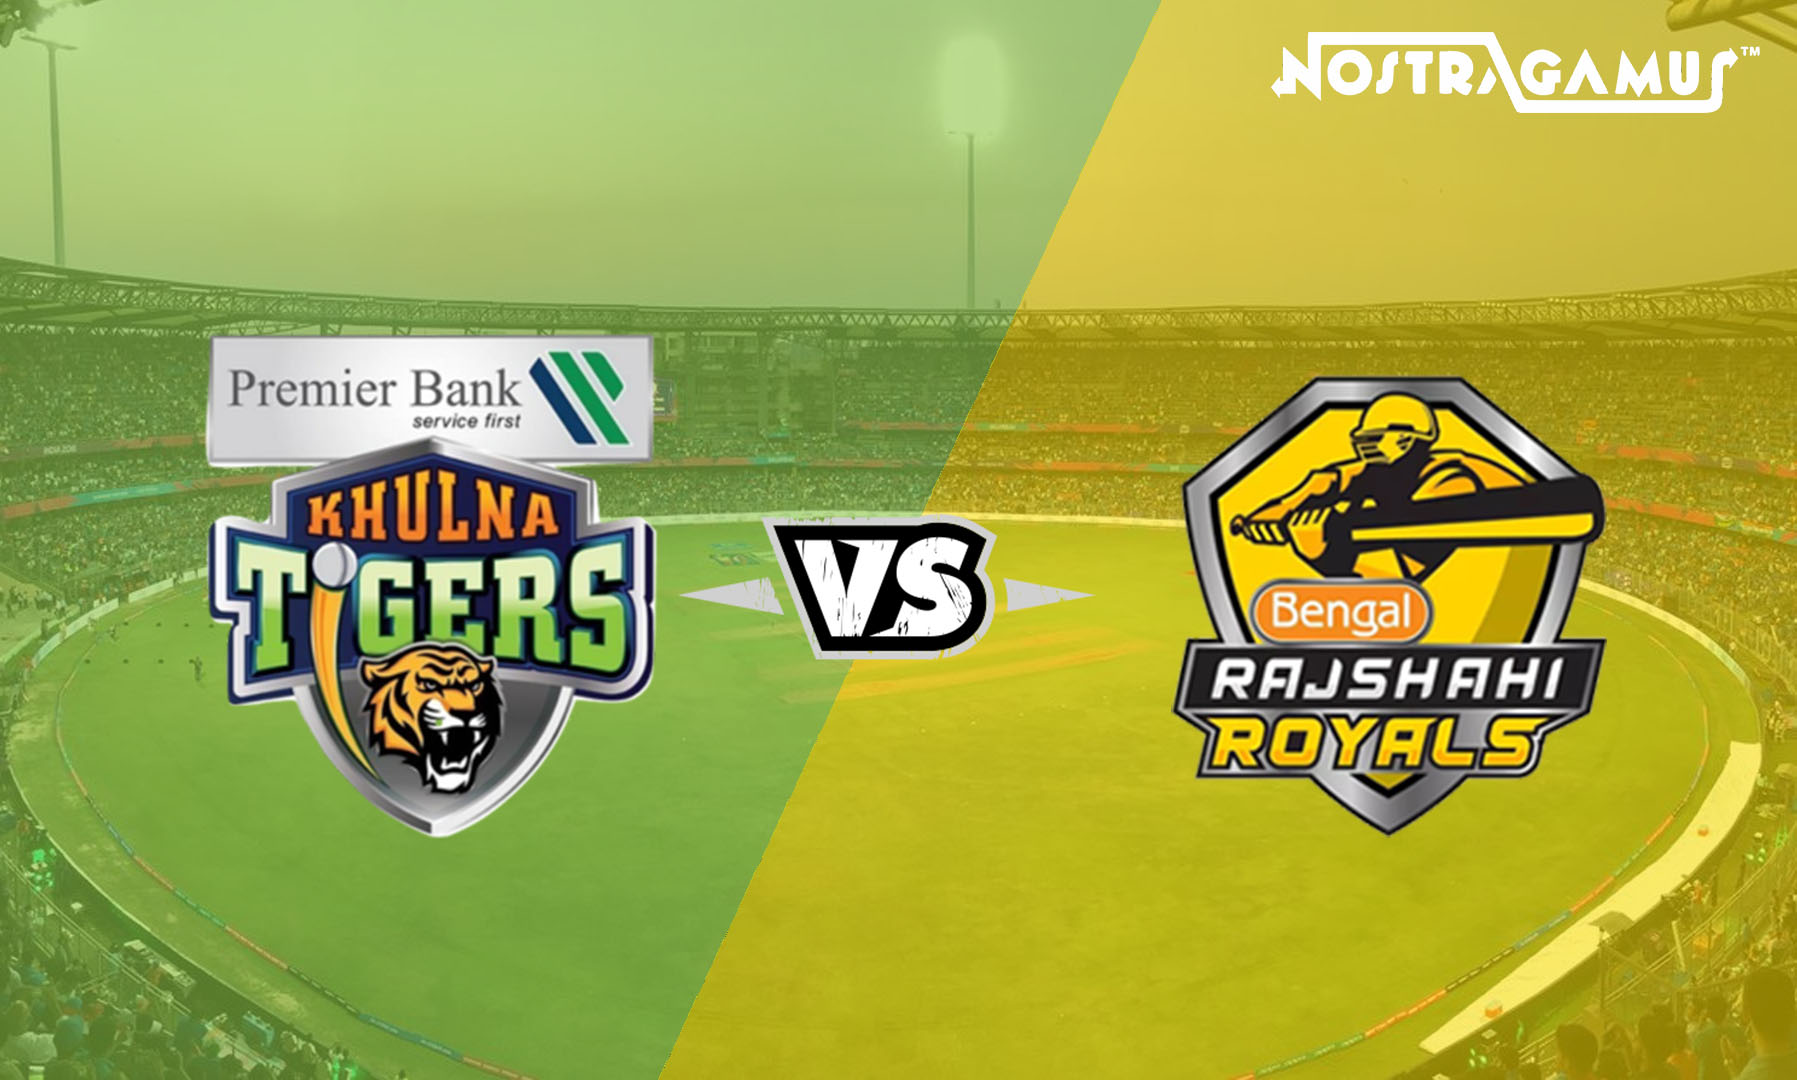 Bangladesh Premier League (BPL) Prediction: Khulna Tigers vs Rajshahi Royals, Final